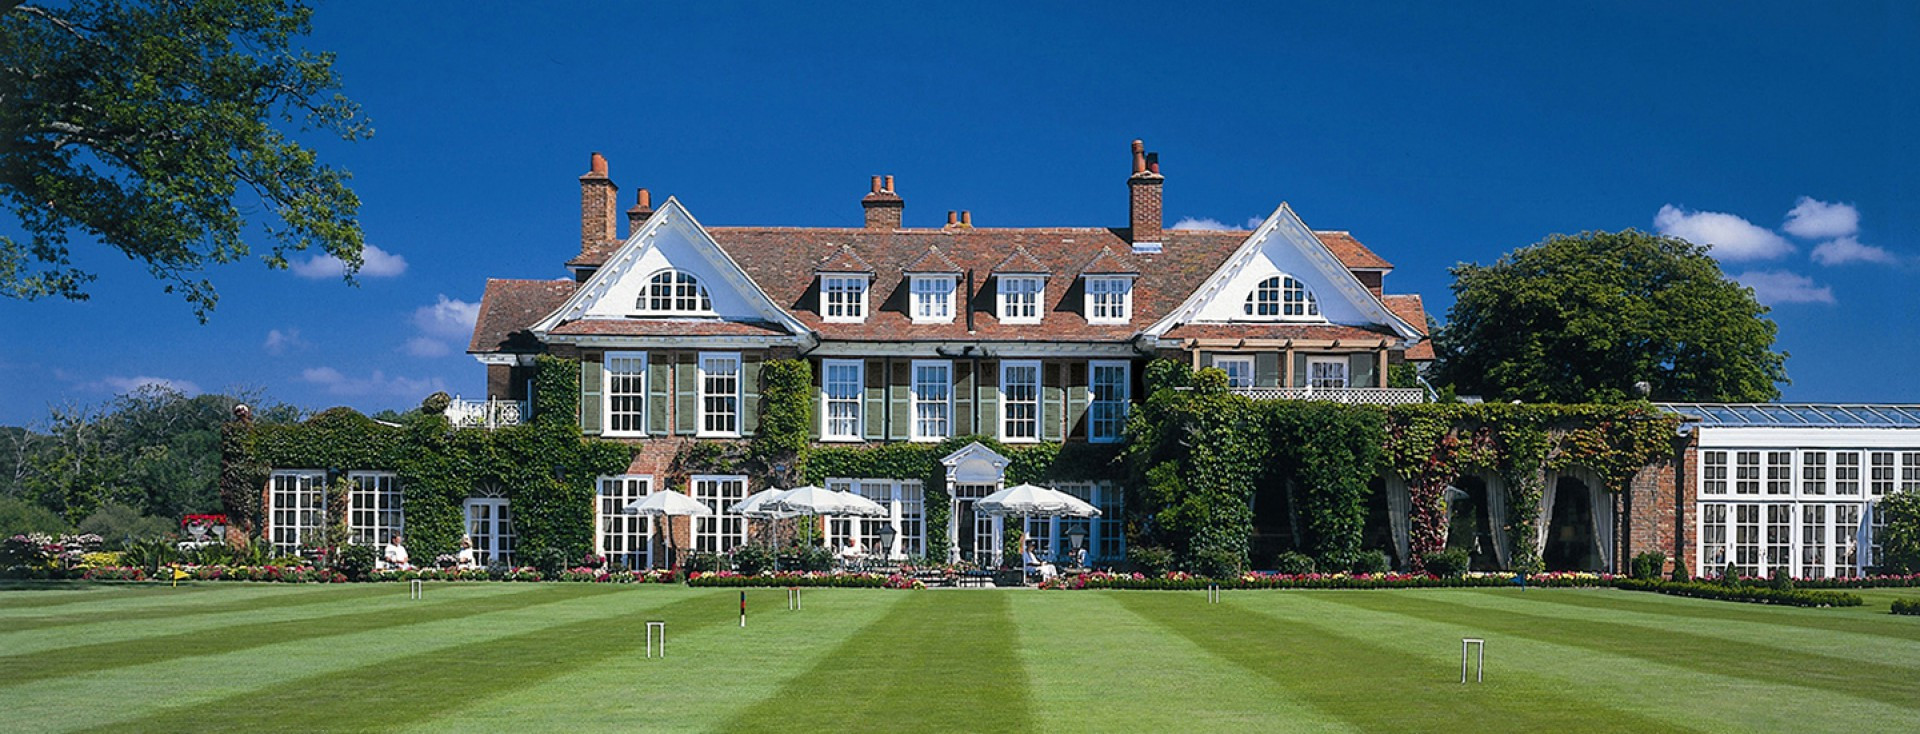 Spa Hotels Hampshire